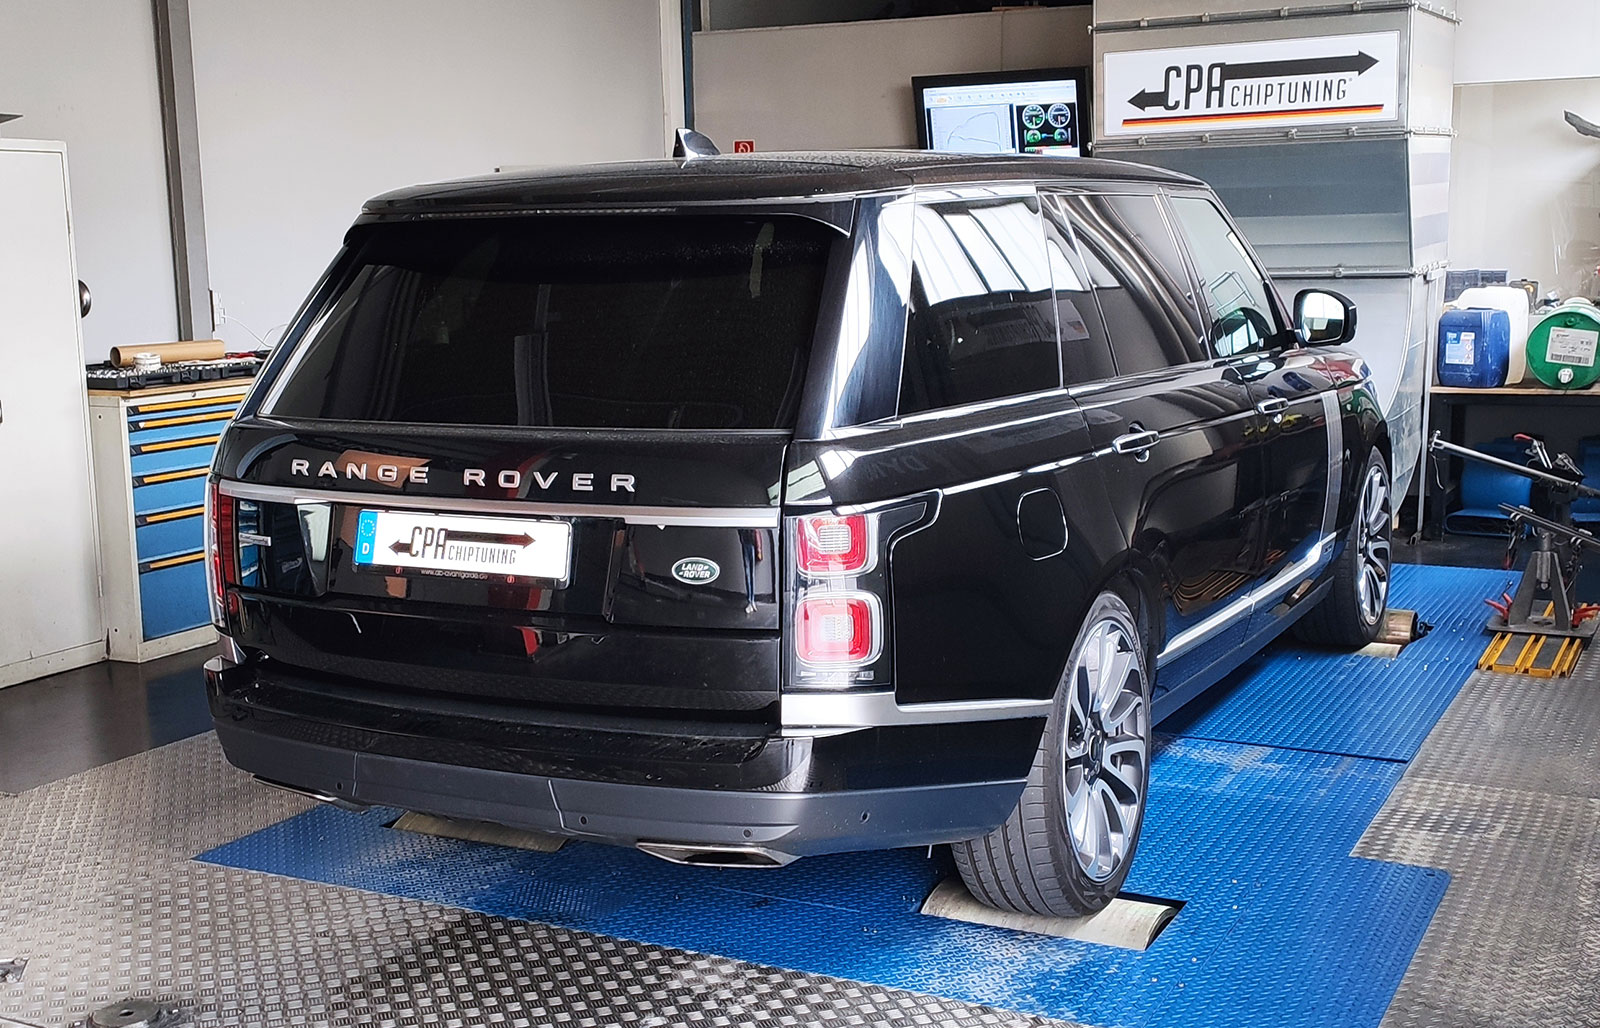 Land Rover Range Rover V8 Supercharged Chiptuning